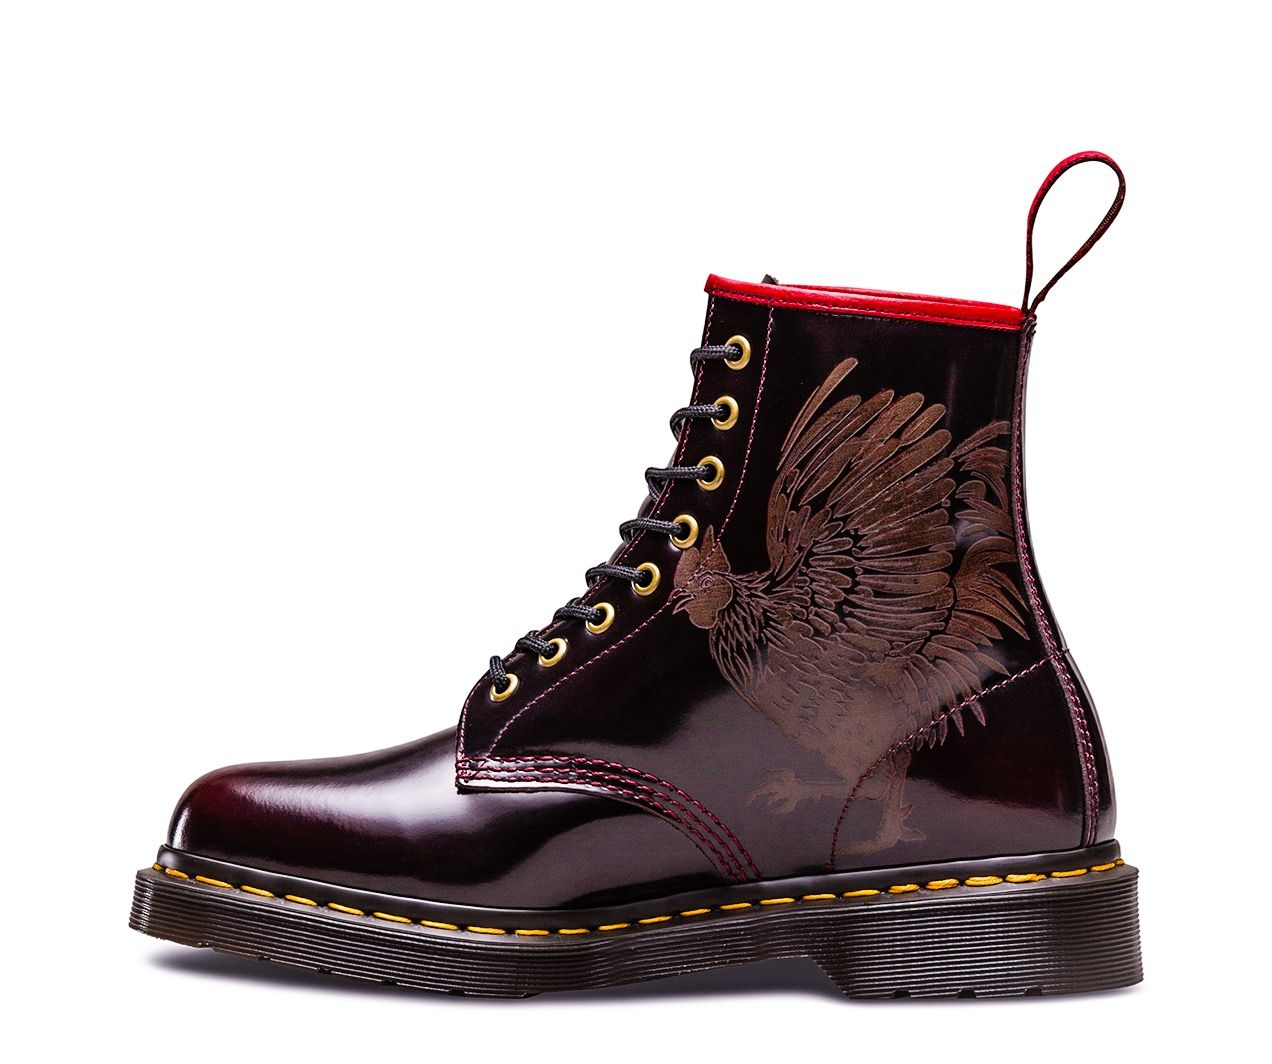 Dr Marten Special Limited Edition 1460 Year of the Rooster